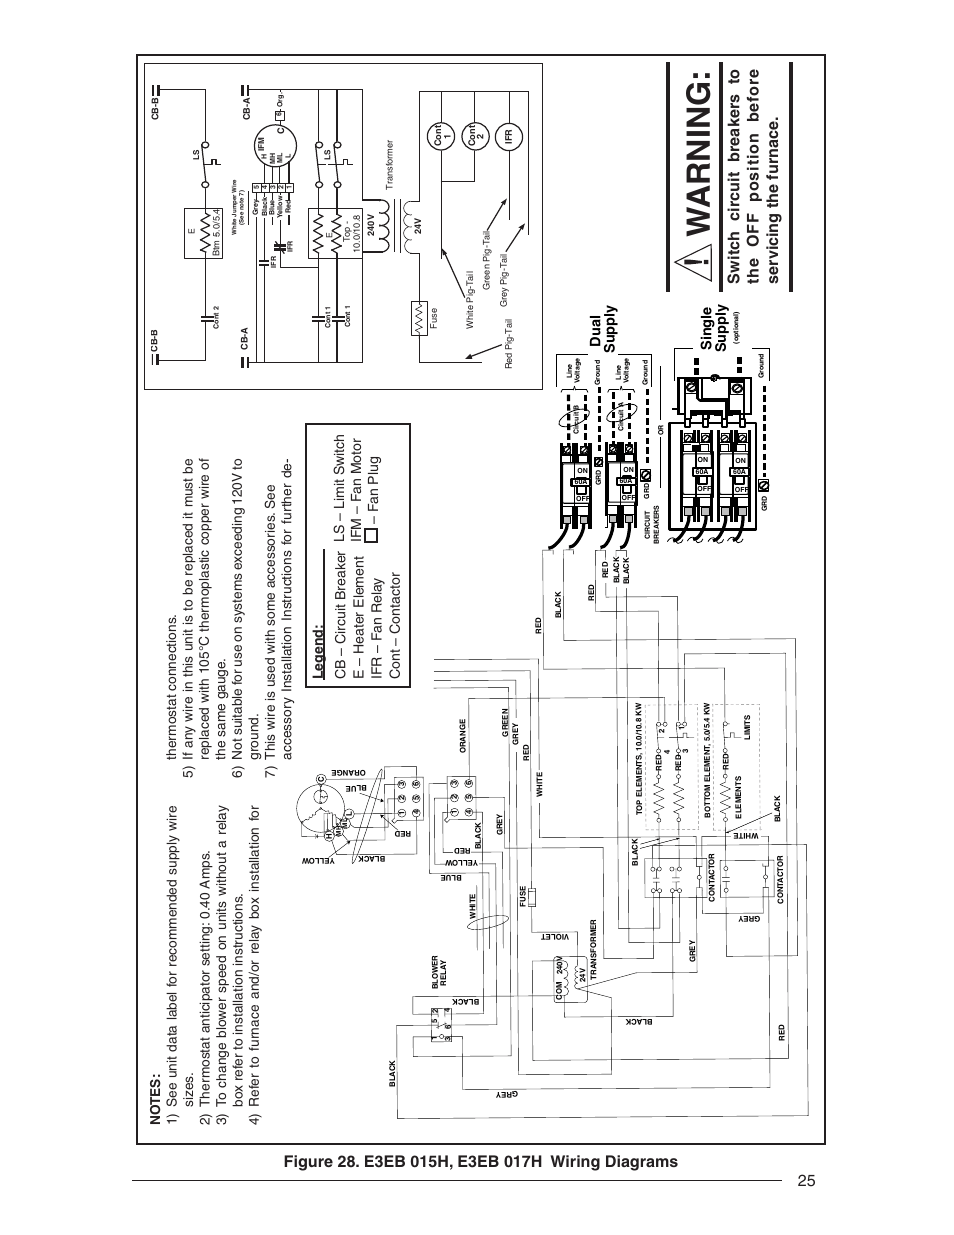 medium resolution of intertherm e3eb 015h wiring diagram data wiring diagram schema e2eb 012ha wiring diagram intertherm wiring diagram model a